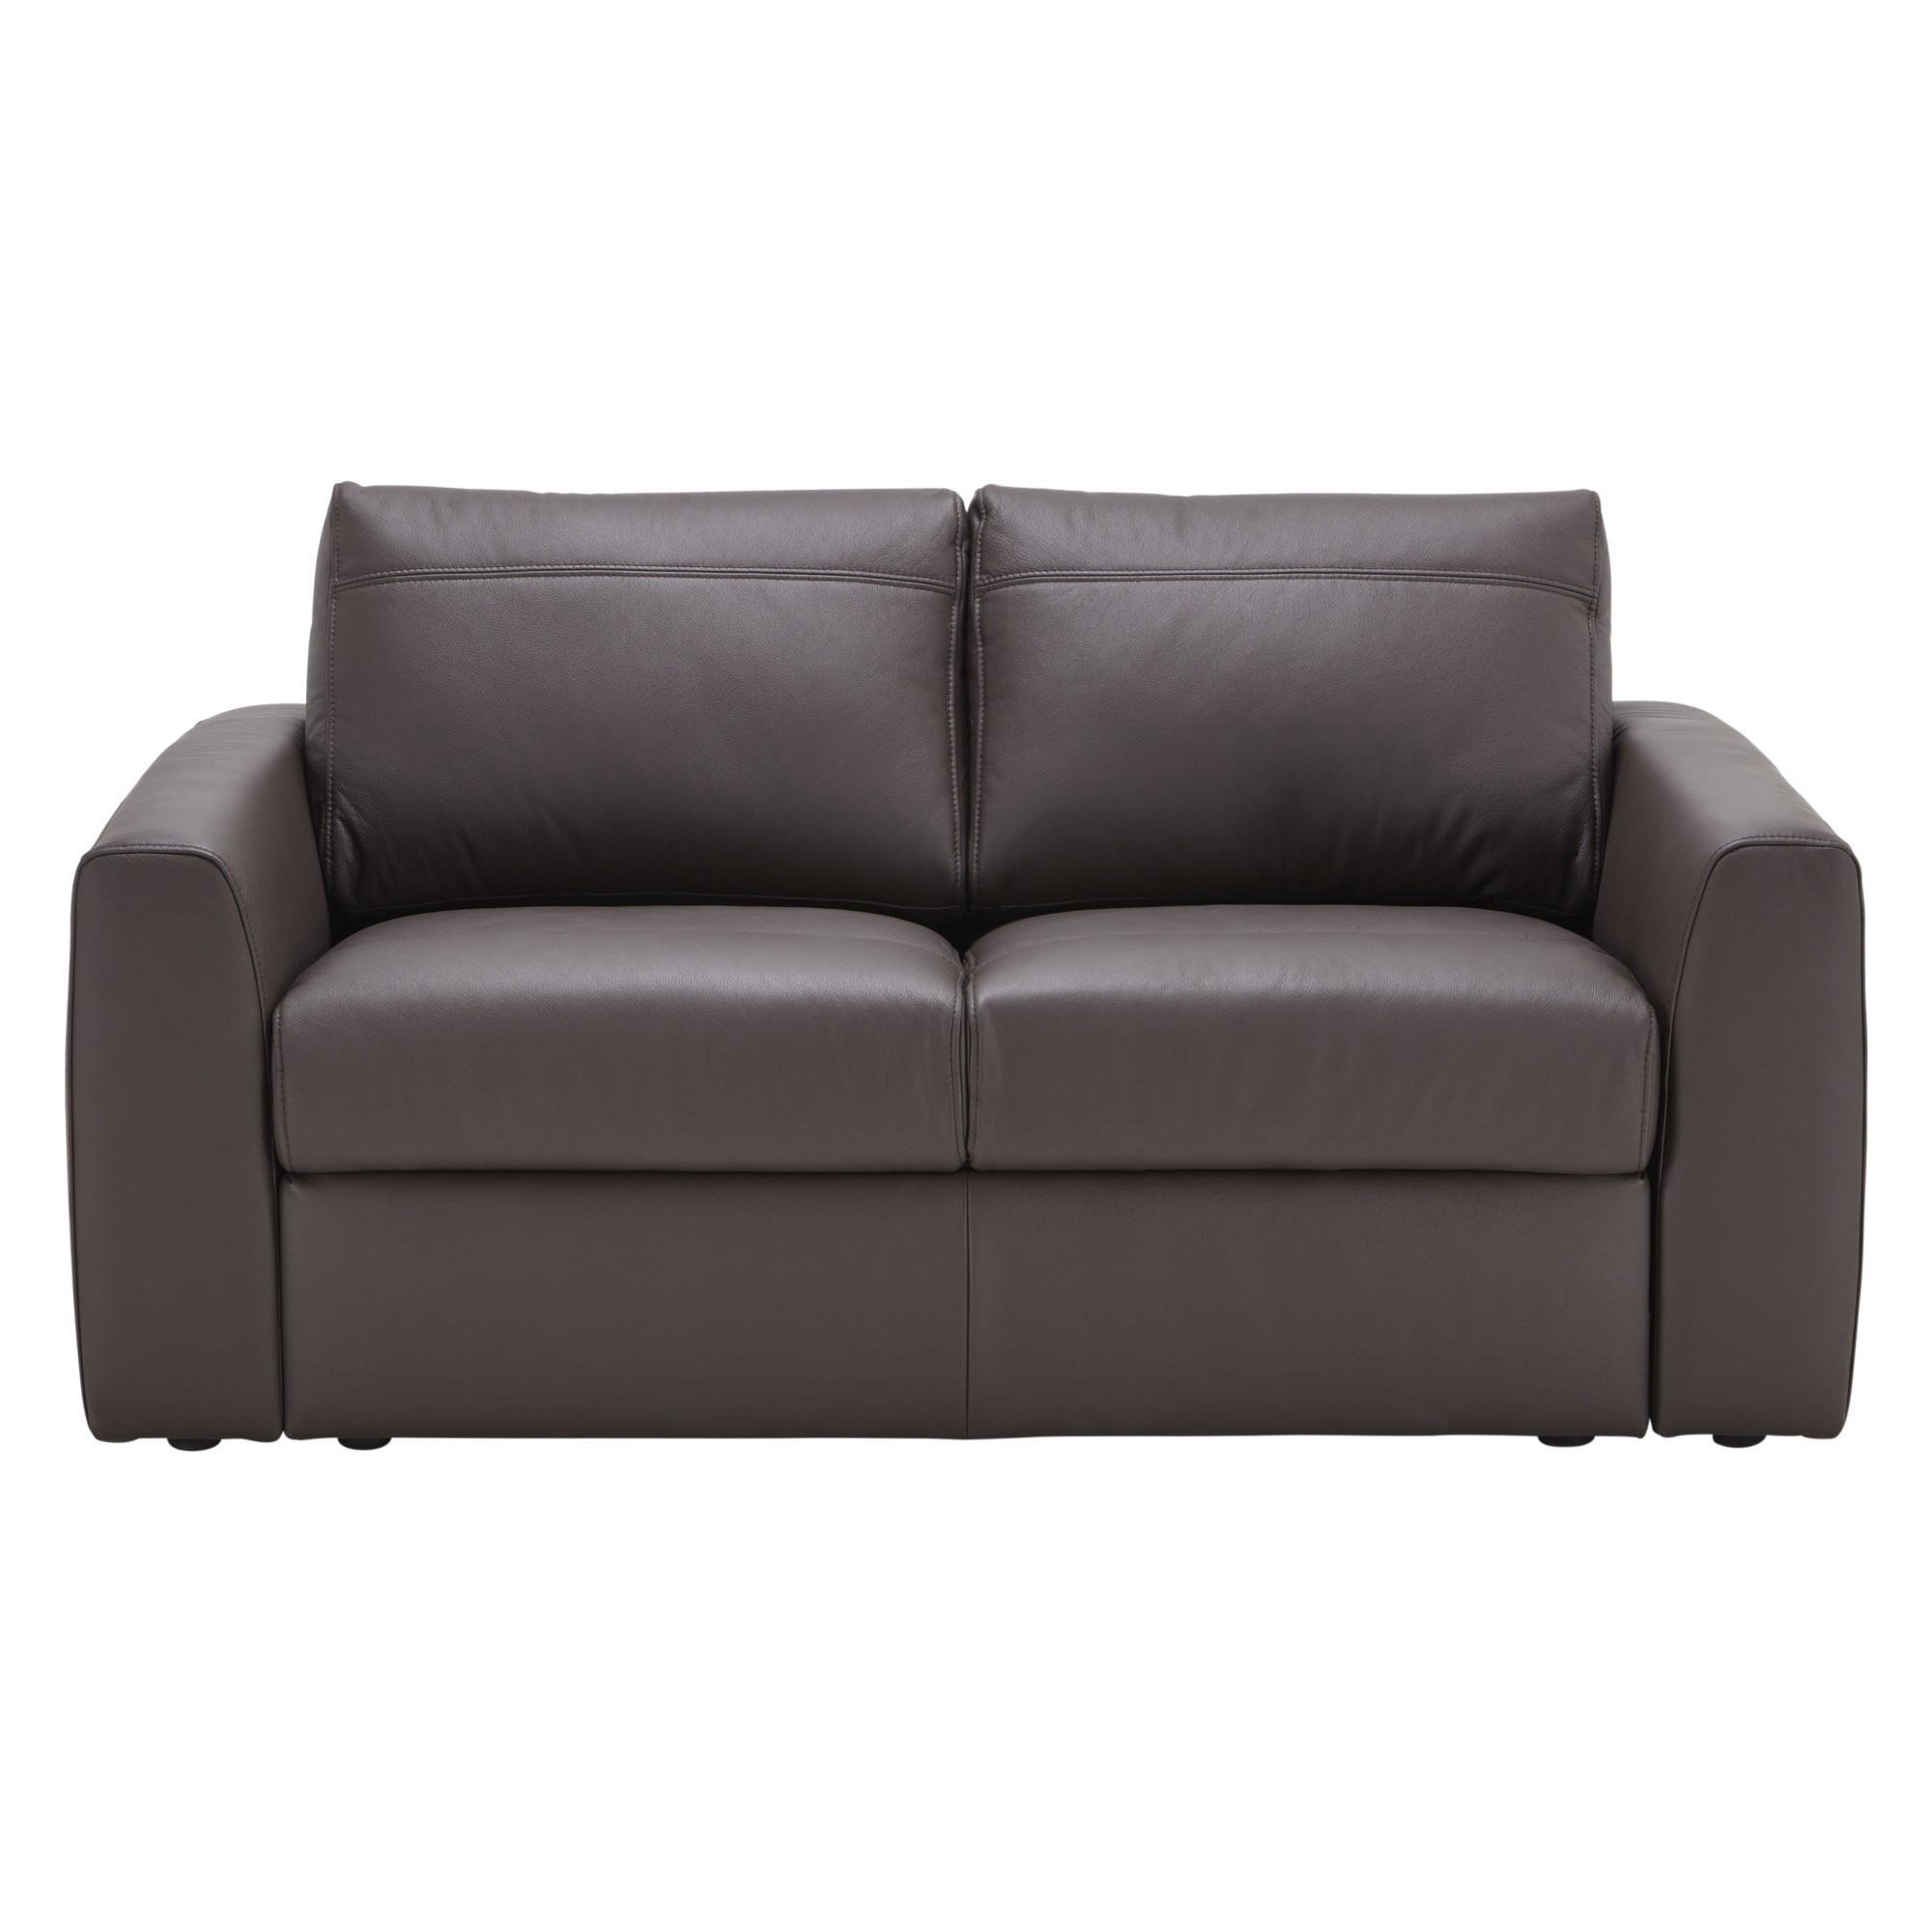 sofa company nl reviews leather polish singapore house by john lewis finlay ii small review